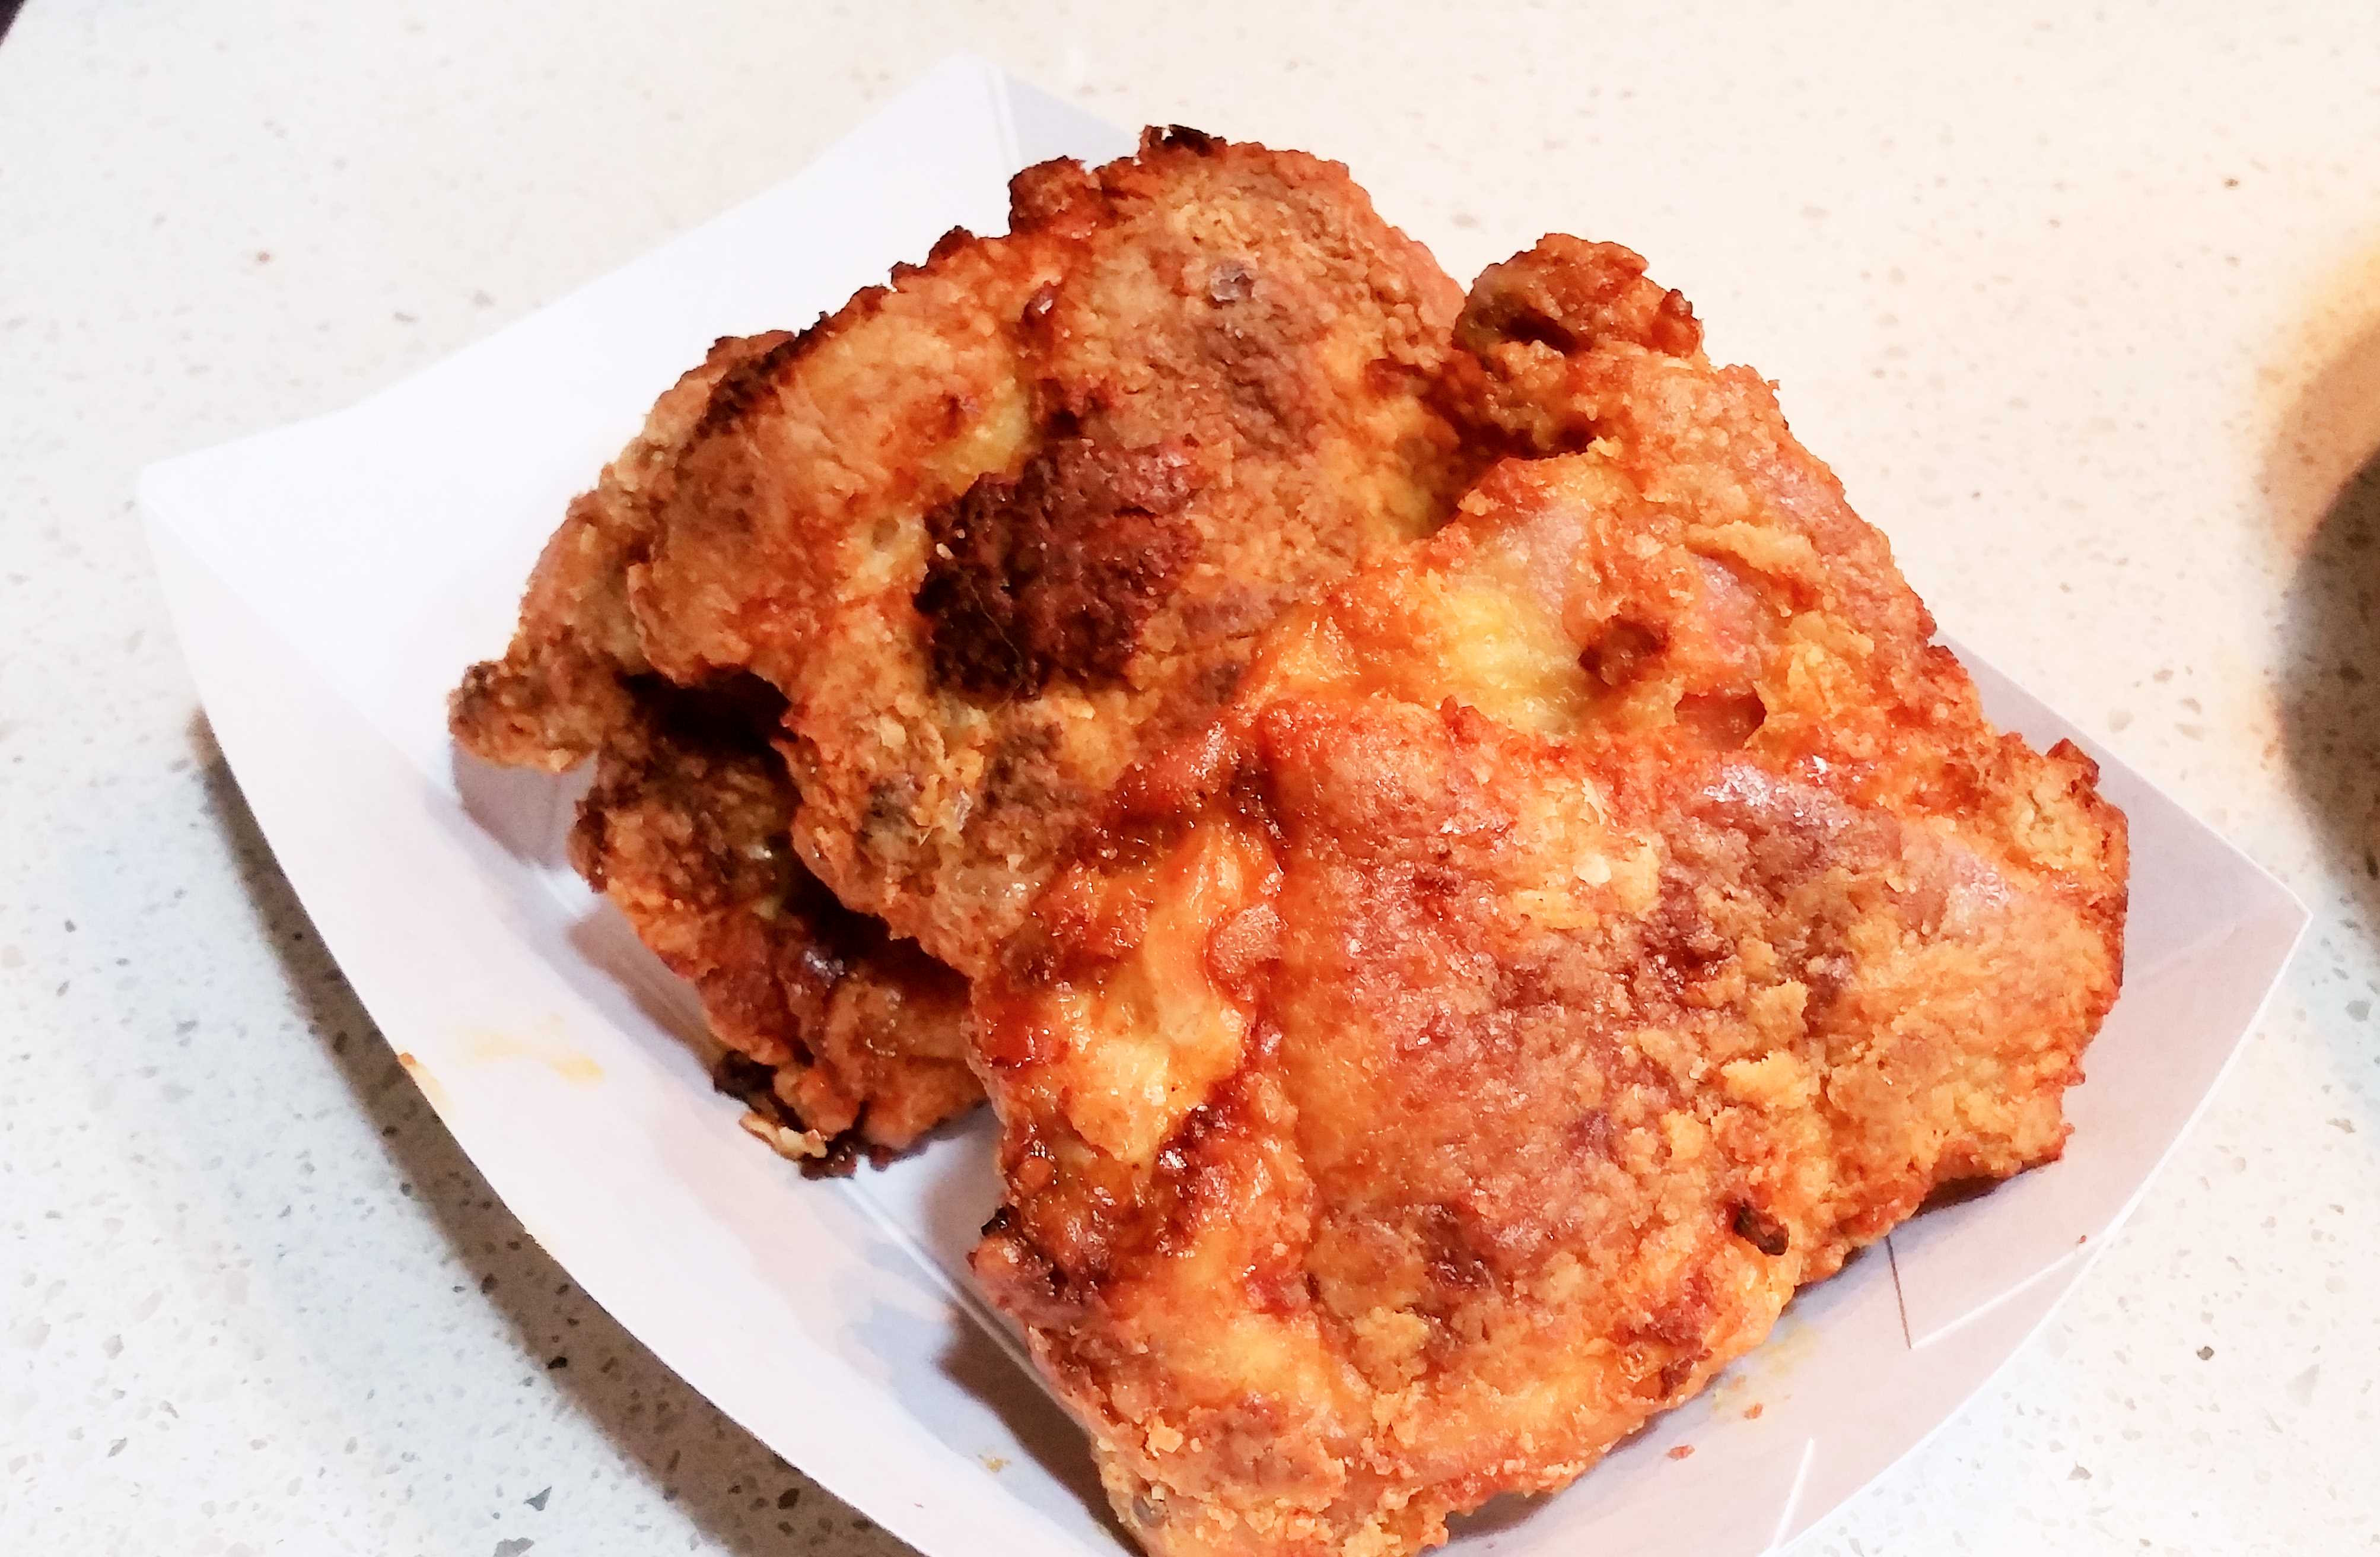 Best Oven Fried Chicken Recipe  the best oven fried chicken recipe ever Sweet Savant